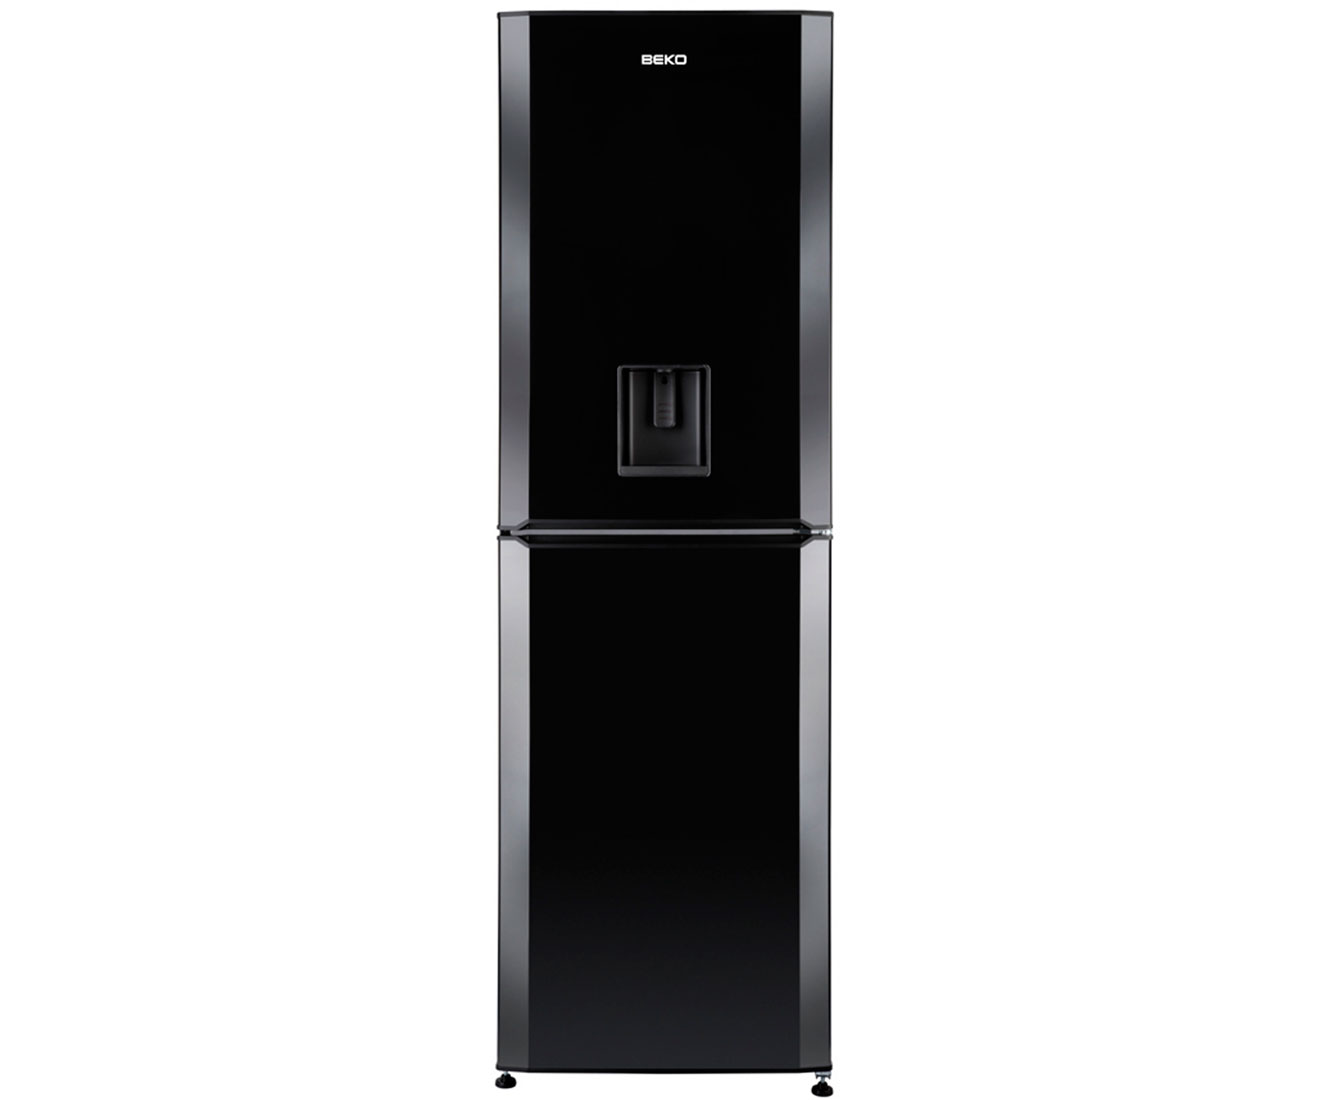 Beko CFD6914APB 50/50 Frost Free Fridge Freezer - Black